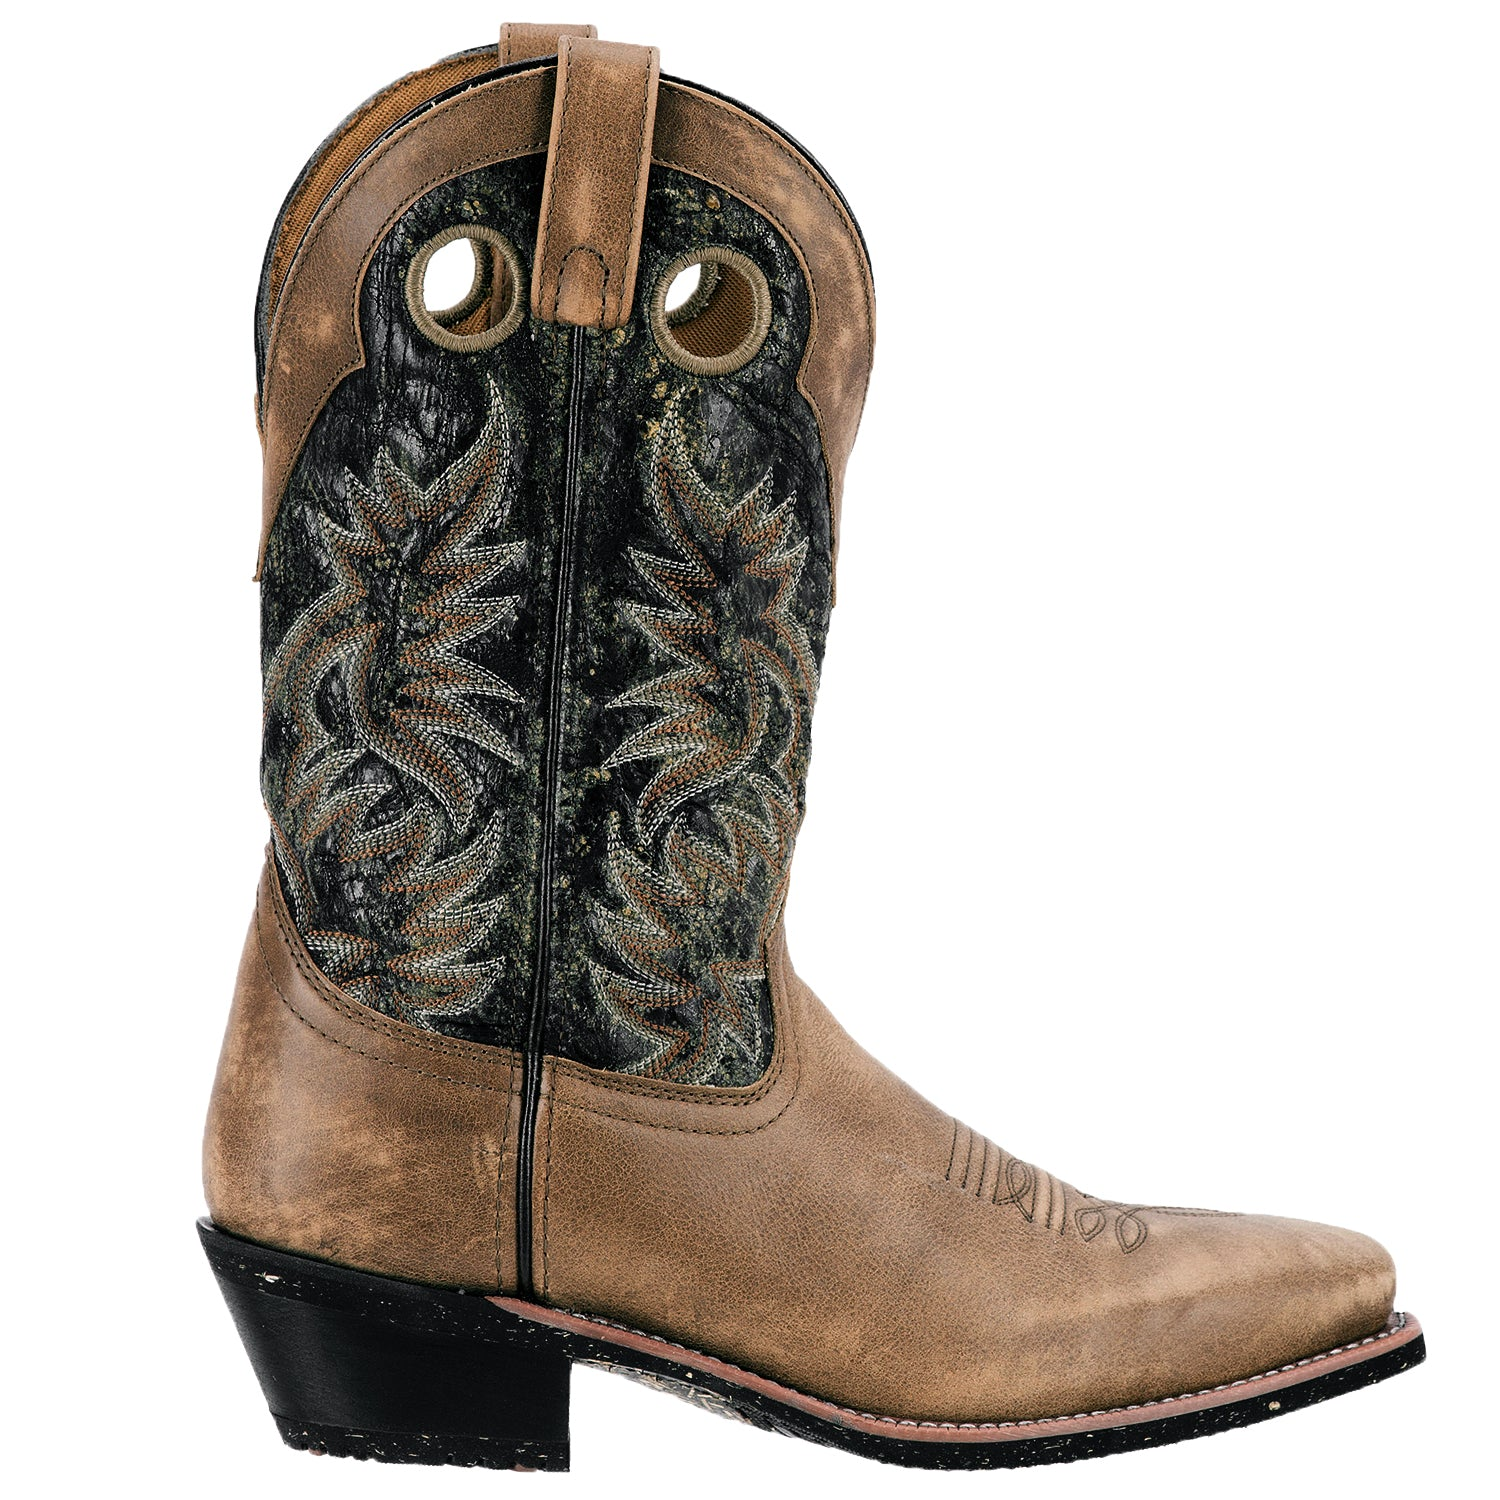 STILLWATER LEATHER BOOT 4254293131306